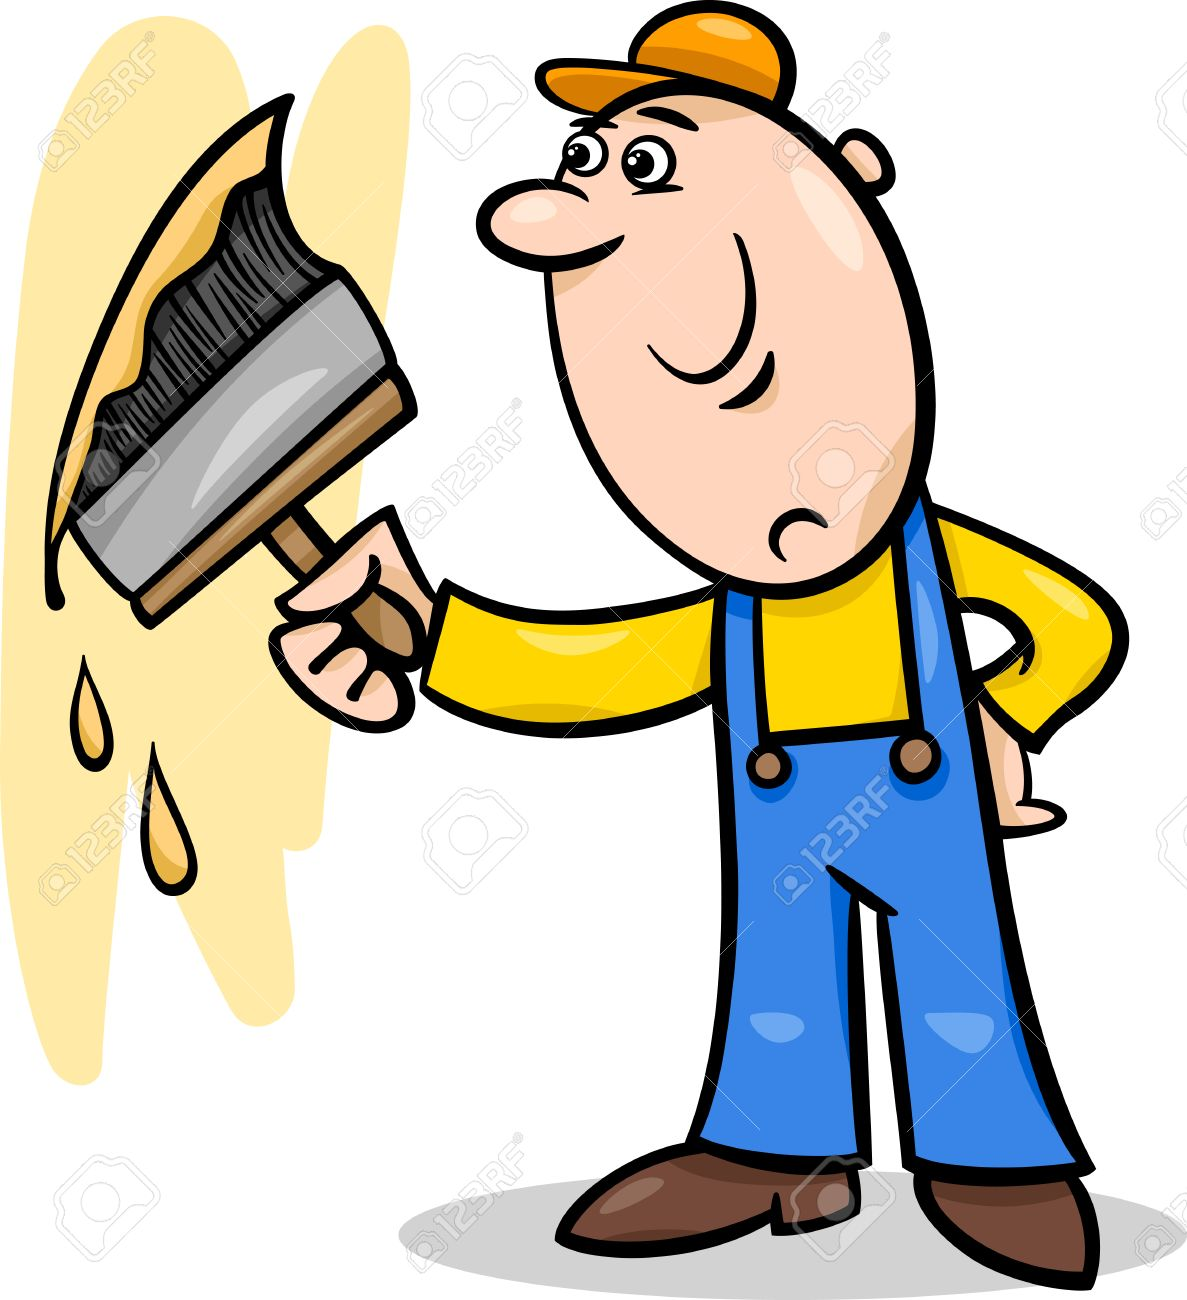 Cartoon Illustration Of Worker With Big Brush Painting A Wall